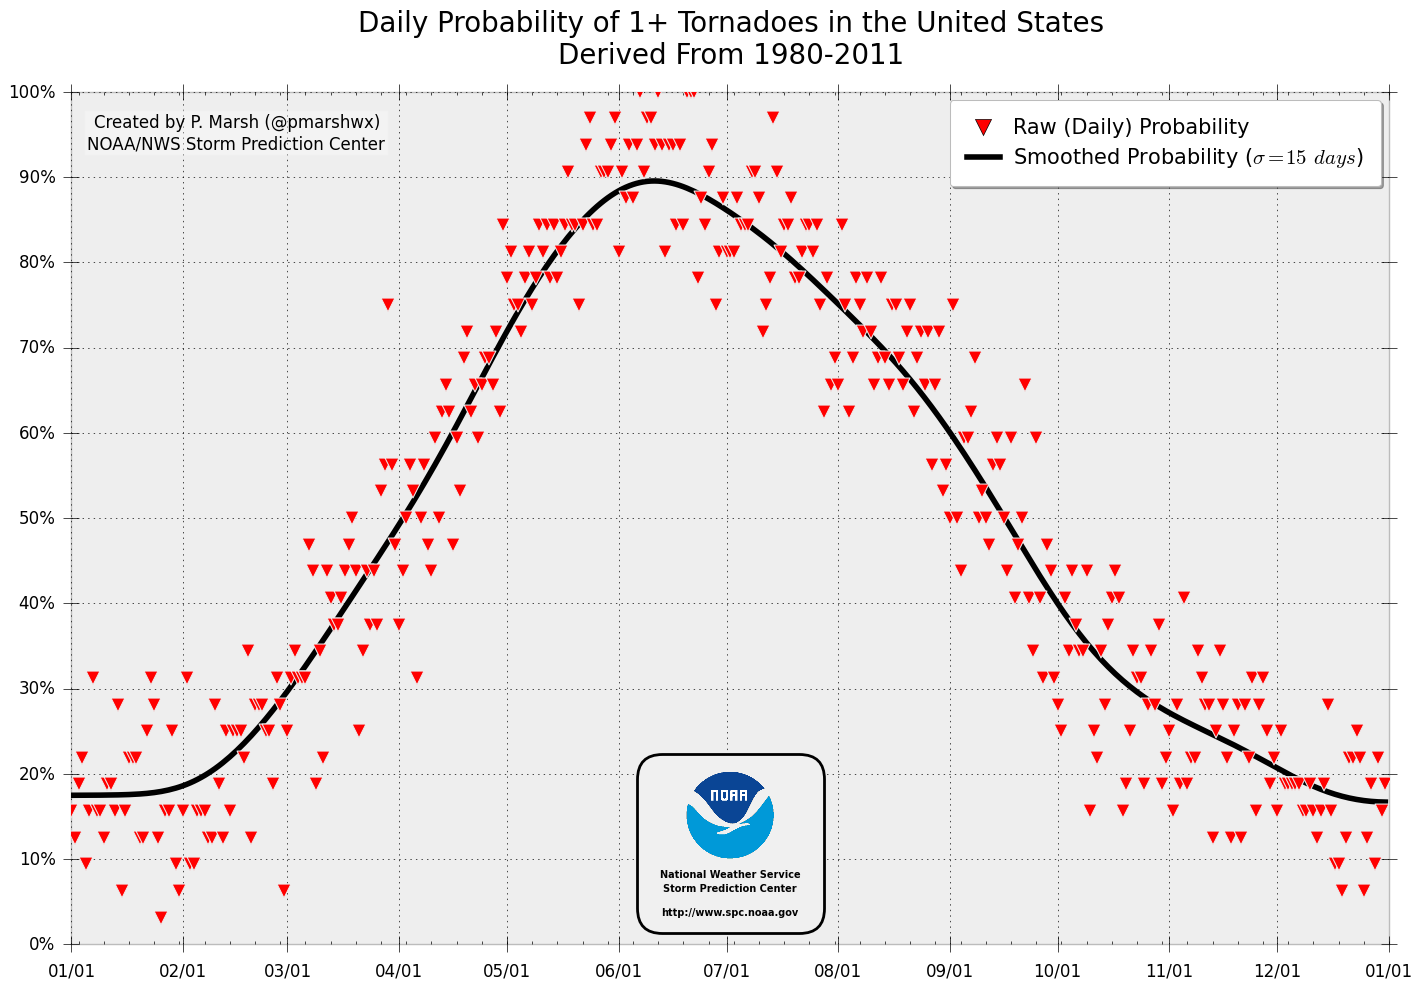 Daily Probability of a Tornado Anywhere in U.S., based on 33 years of historical data